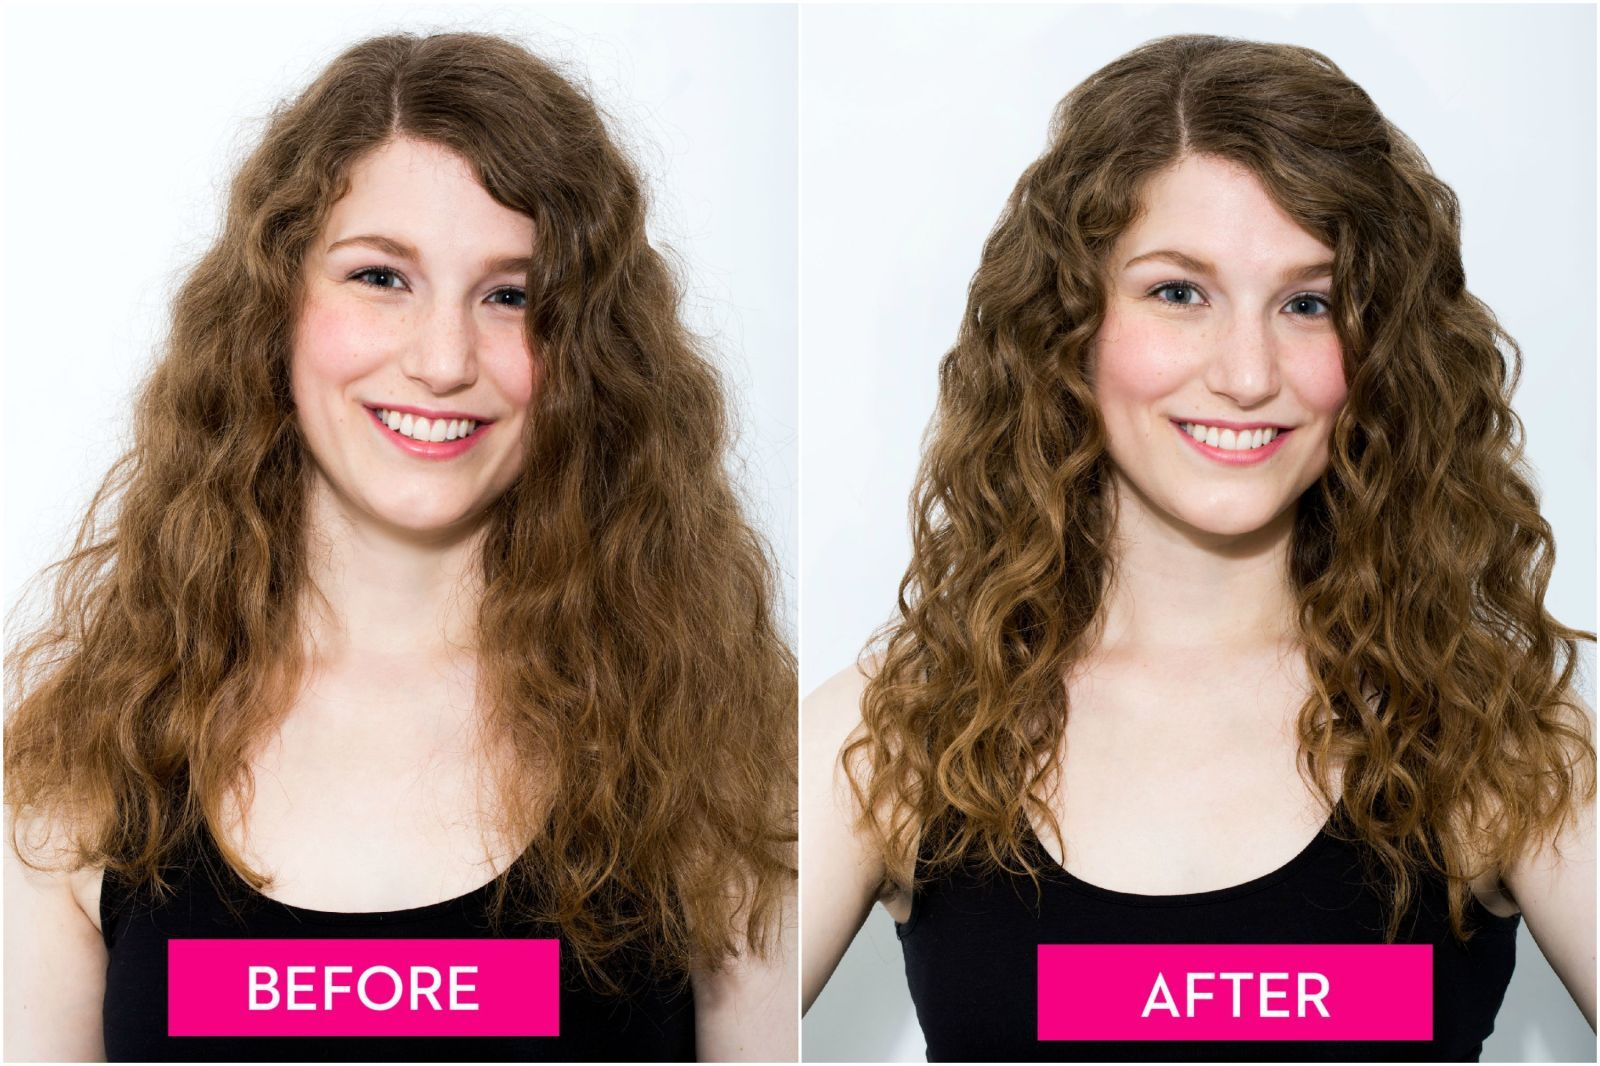 How To Get Perfect Natural Curls Using Just A Diffuser Hair Diffuser Curly Hair Styles Curly Hair Styles Naturally